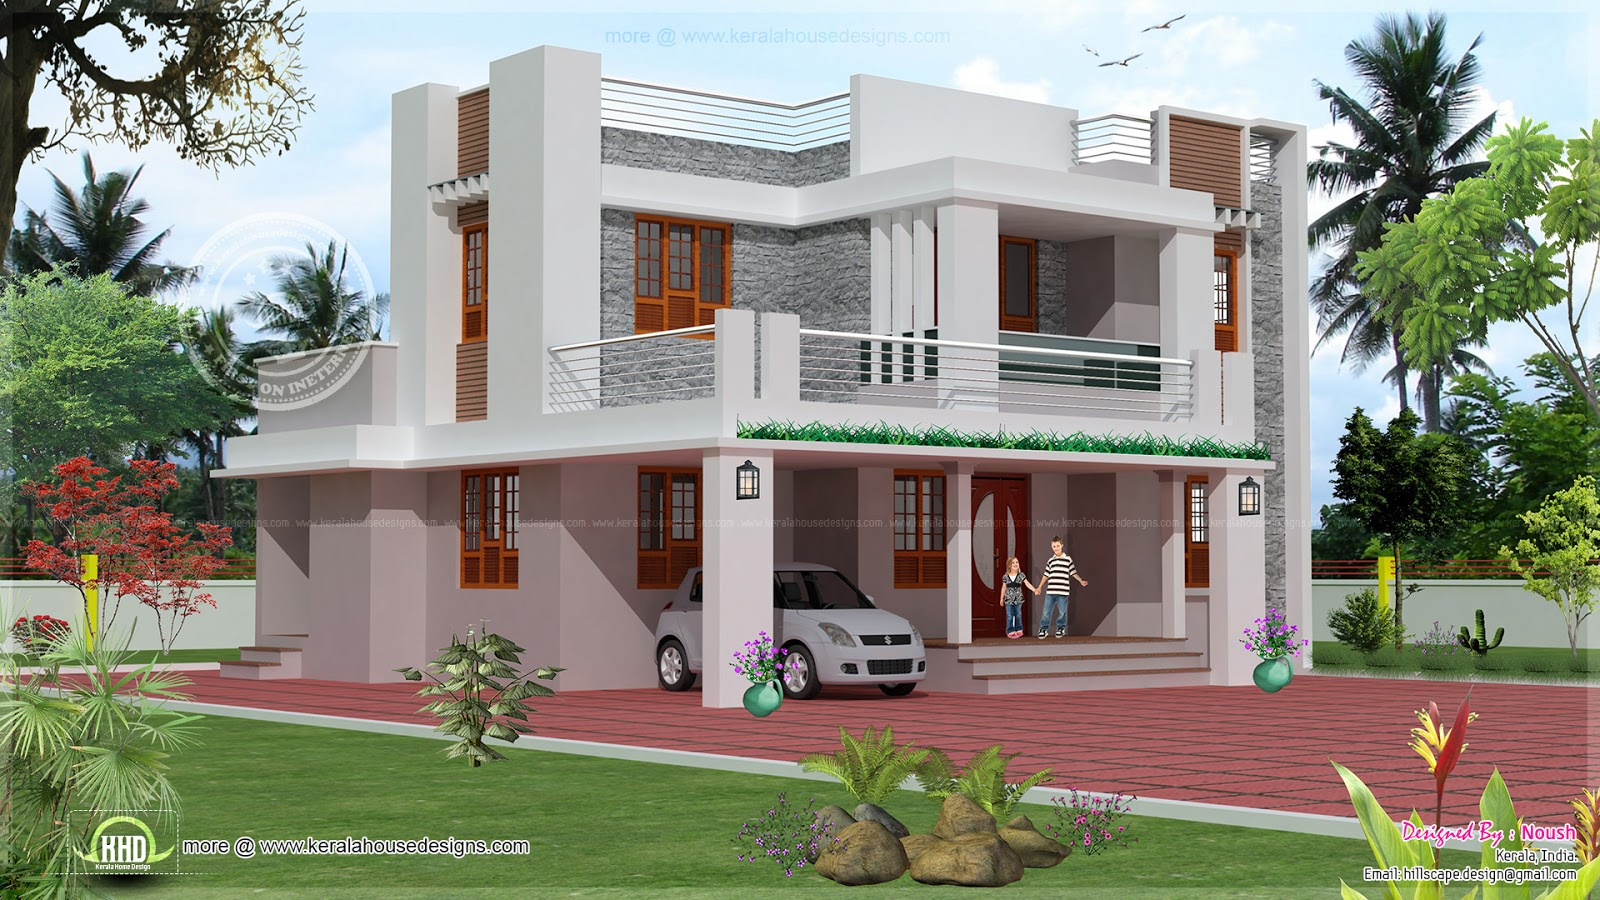 4 bedroom 2 story house exterior design home kerala plans for 2 storey house design